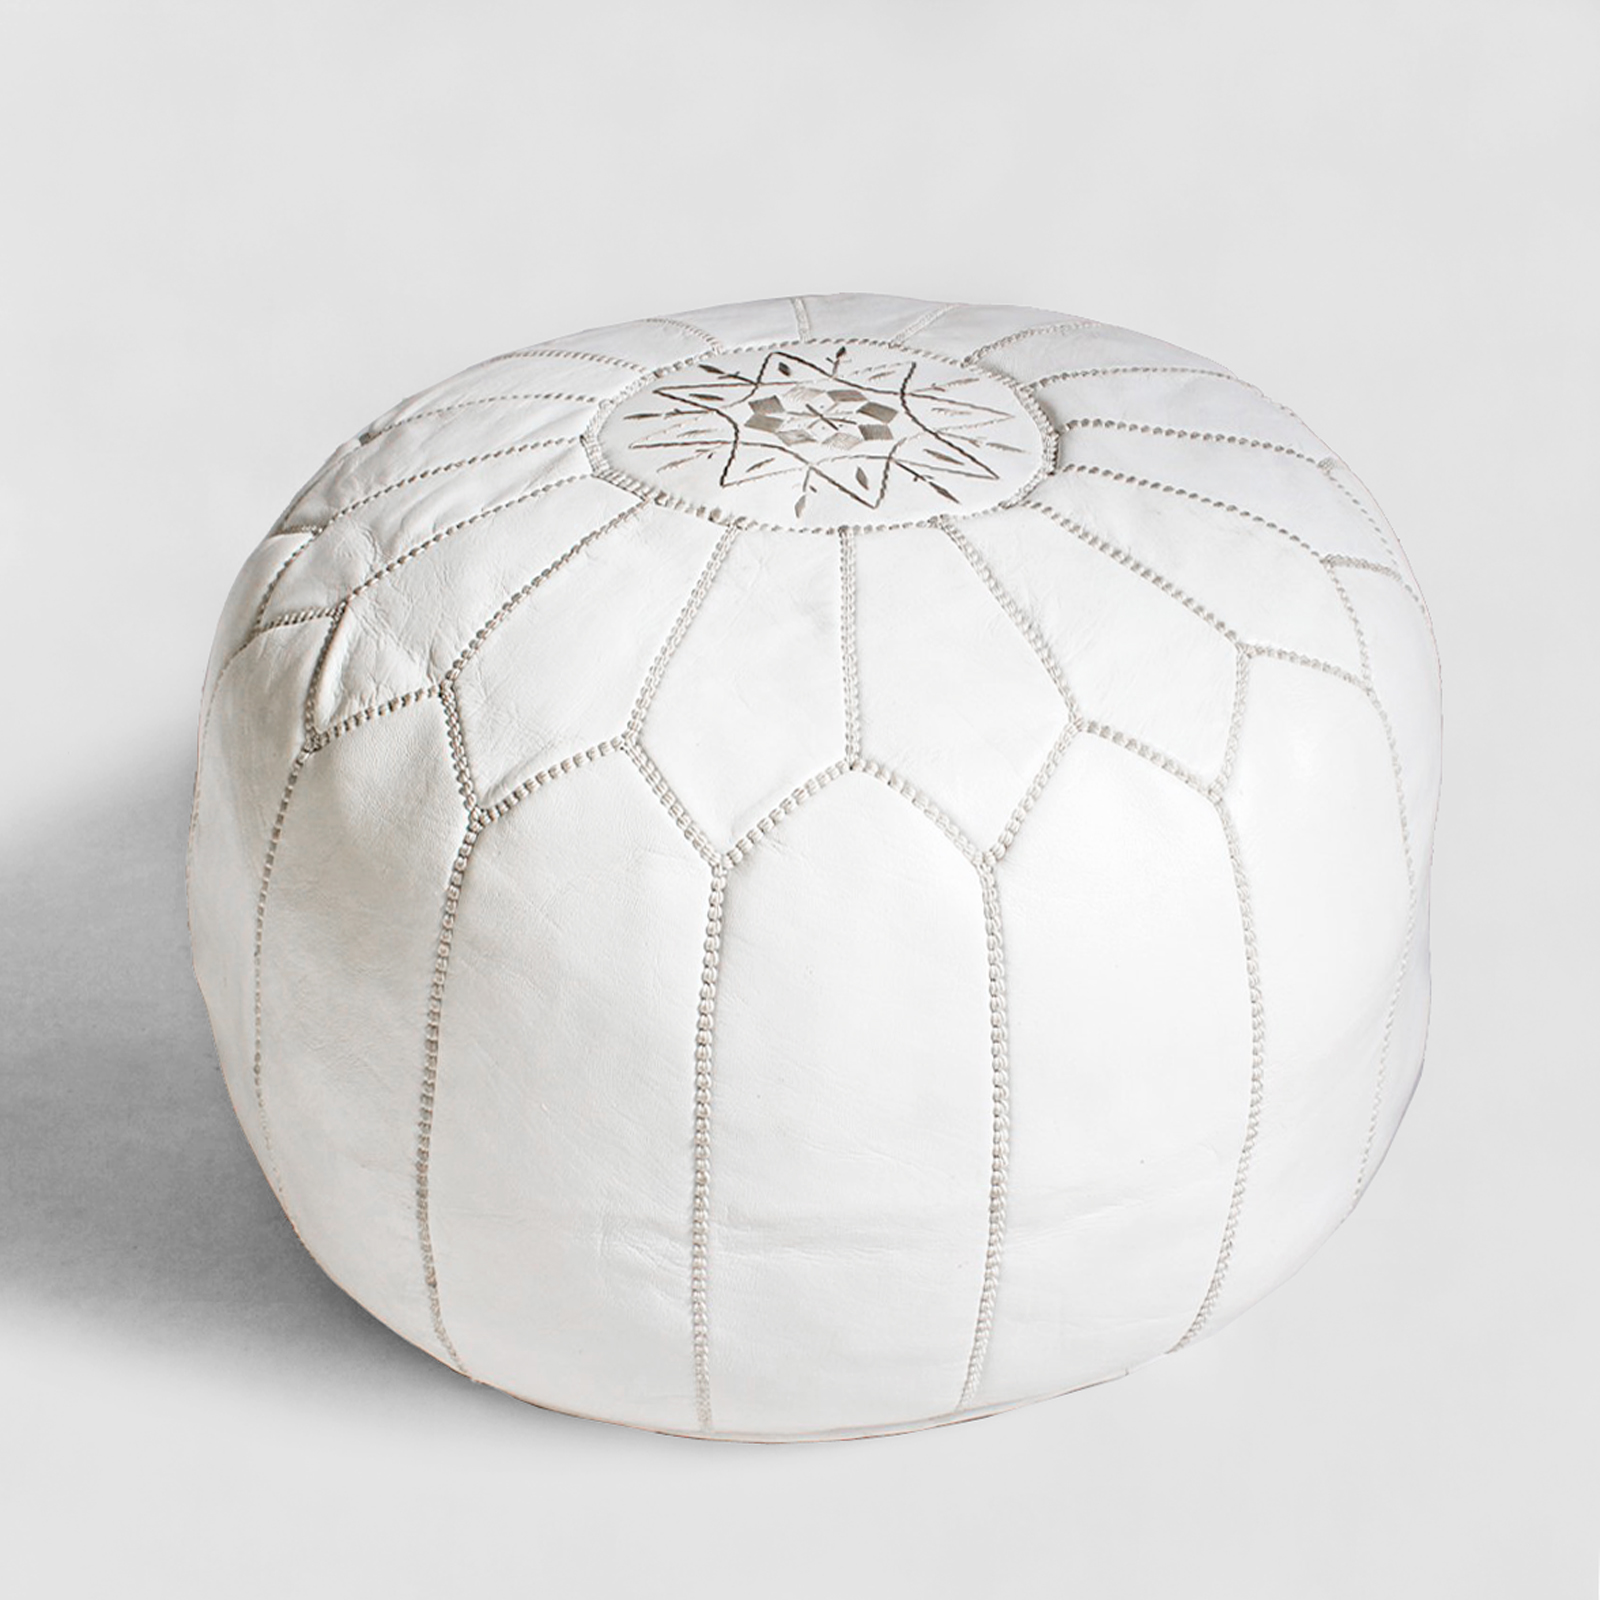 Surprising White Leather Ottoman Pouf Furniture Design Mix Gallery Gmtry Best Dining Table And Chair Ideas Images Gmtryco